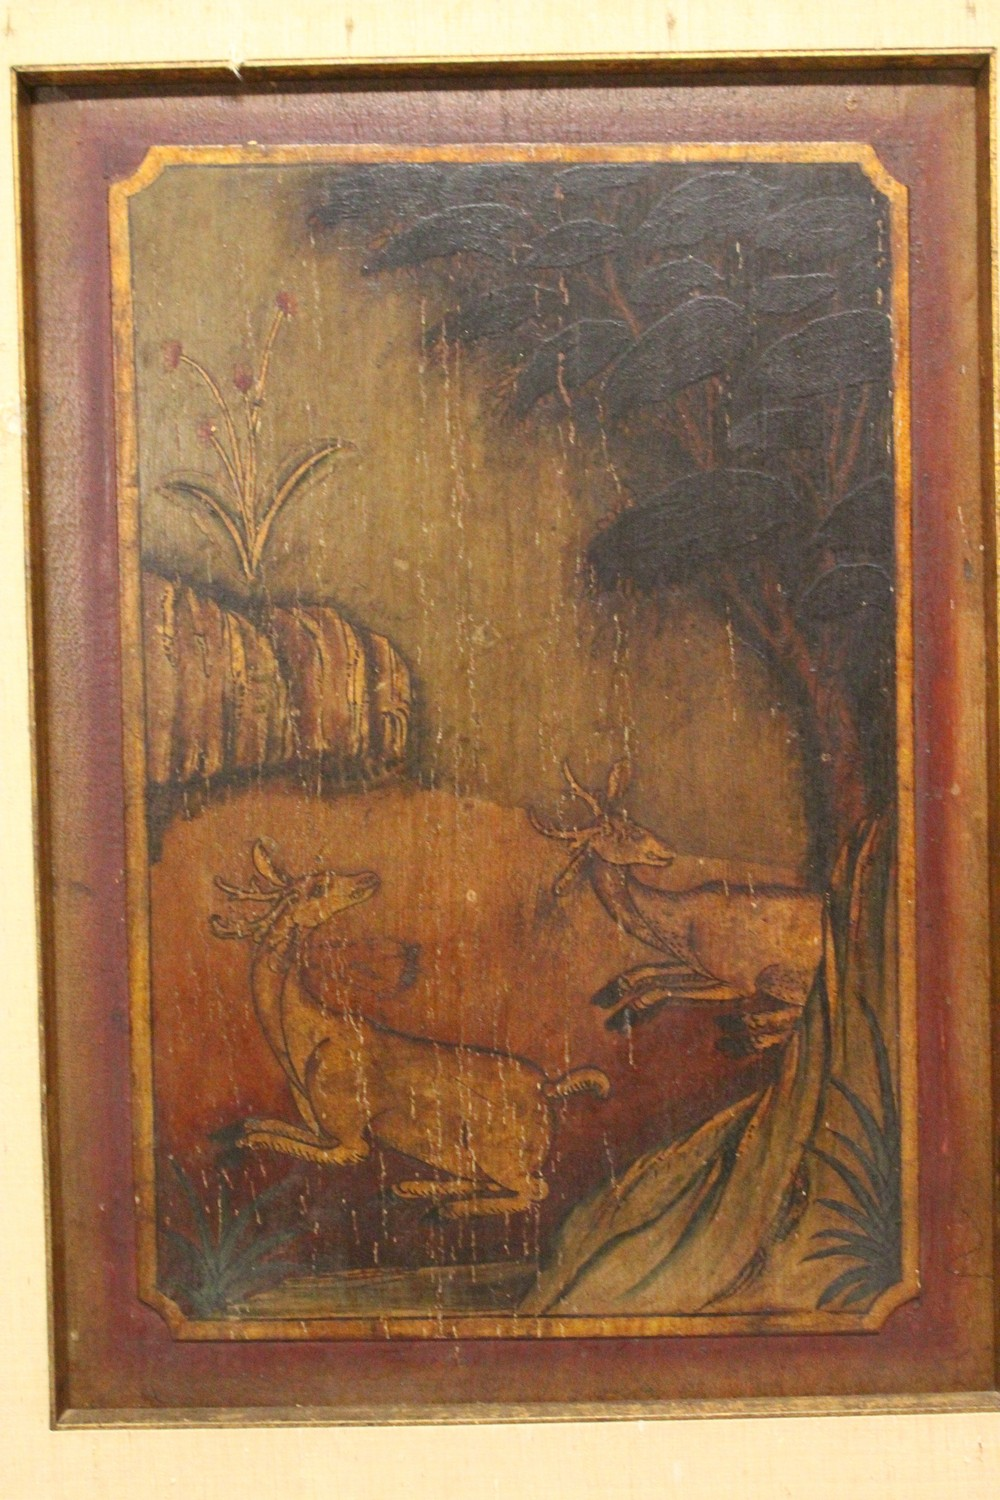 Lot 382 - A SET OF FOUR 19TH CENTURY CHINESE FRAMED PAINTED WOOD PANELS, each panel with a varying scene of